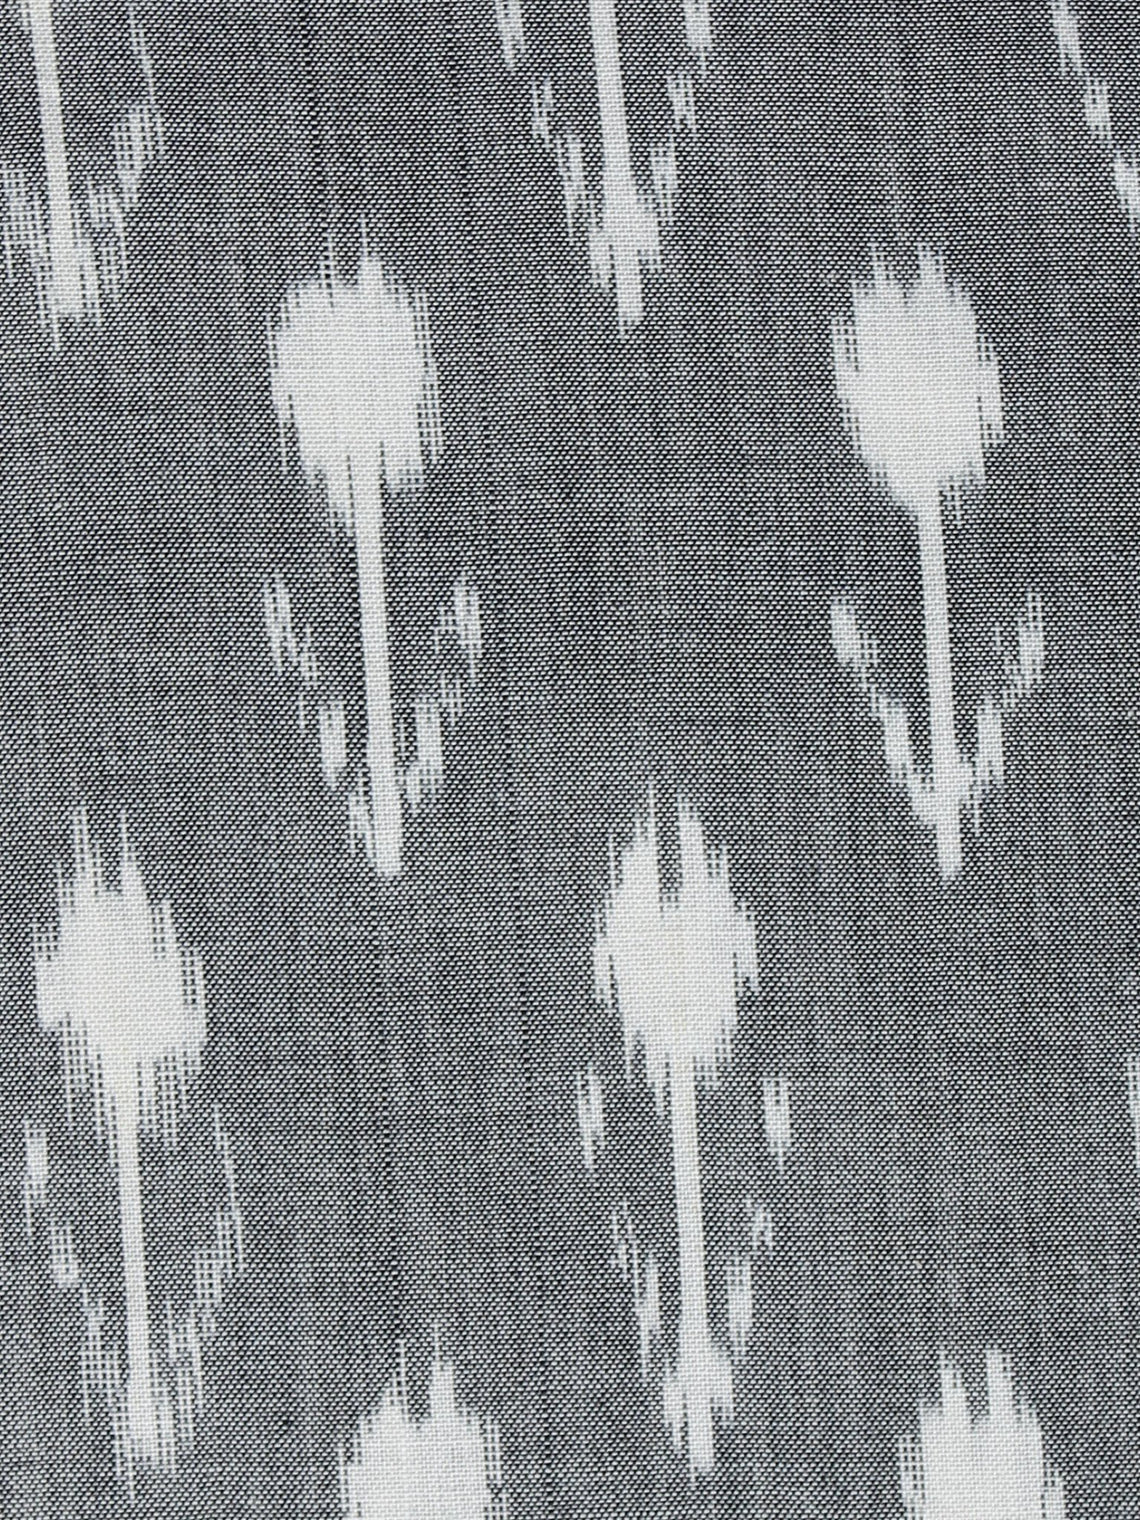 Steel Grey White Pochampally Hand Weaved Ikat Mercerised Fabric Per Meter - F003F1291